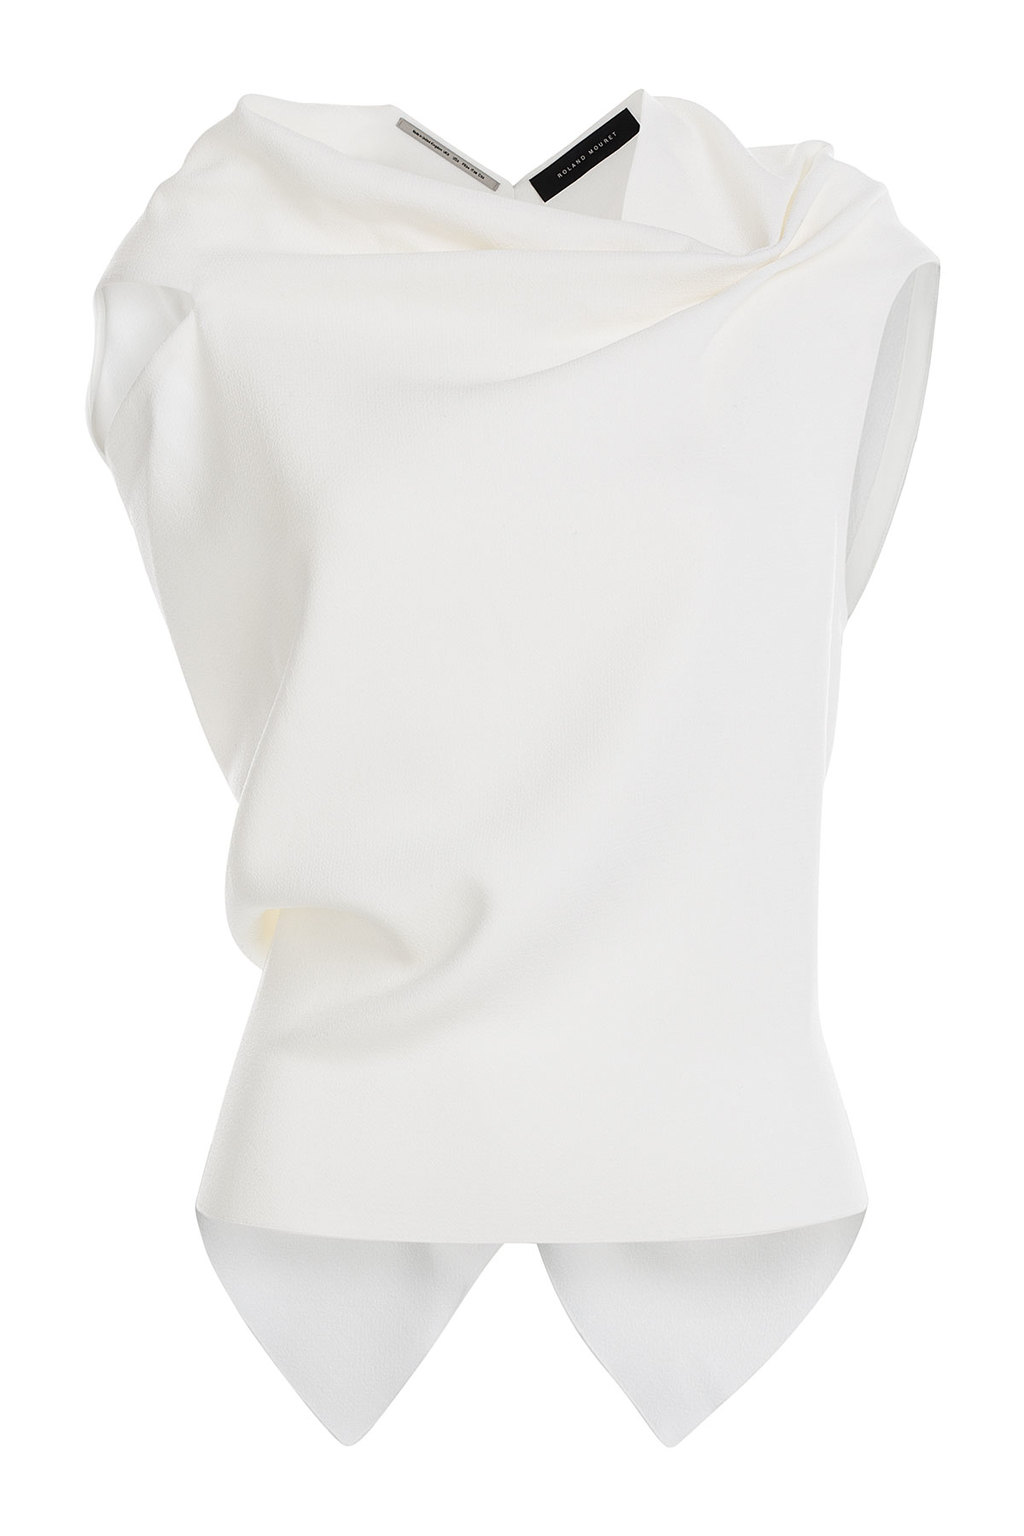 Wool Crepe Top With Open Back White - neckline: cowl/draped neck; sleeve style: capped; pattern: plain; predominant colour: white; occasions: casual; length: standard; style: top; fibres: wool - 100%; fit: body skimming; sleeve length: short sleeve; pattern type: fabric; texture group: woven light midweight; season: s/s 2016; wardrobe: basic